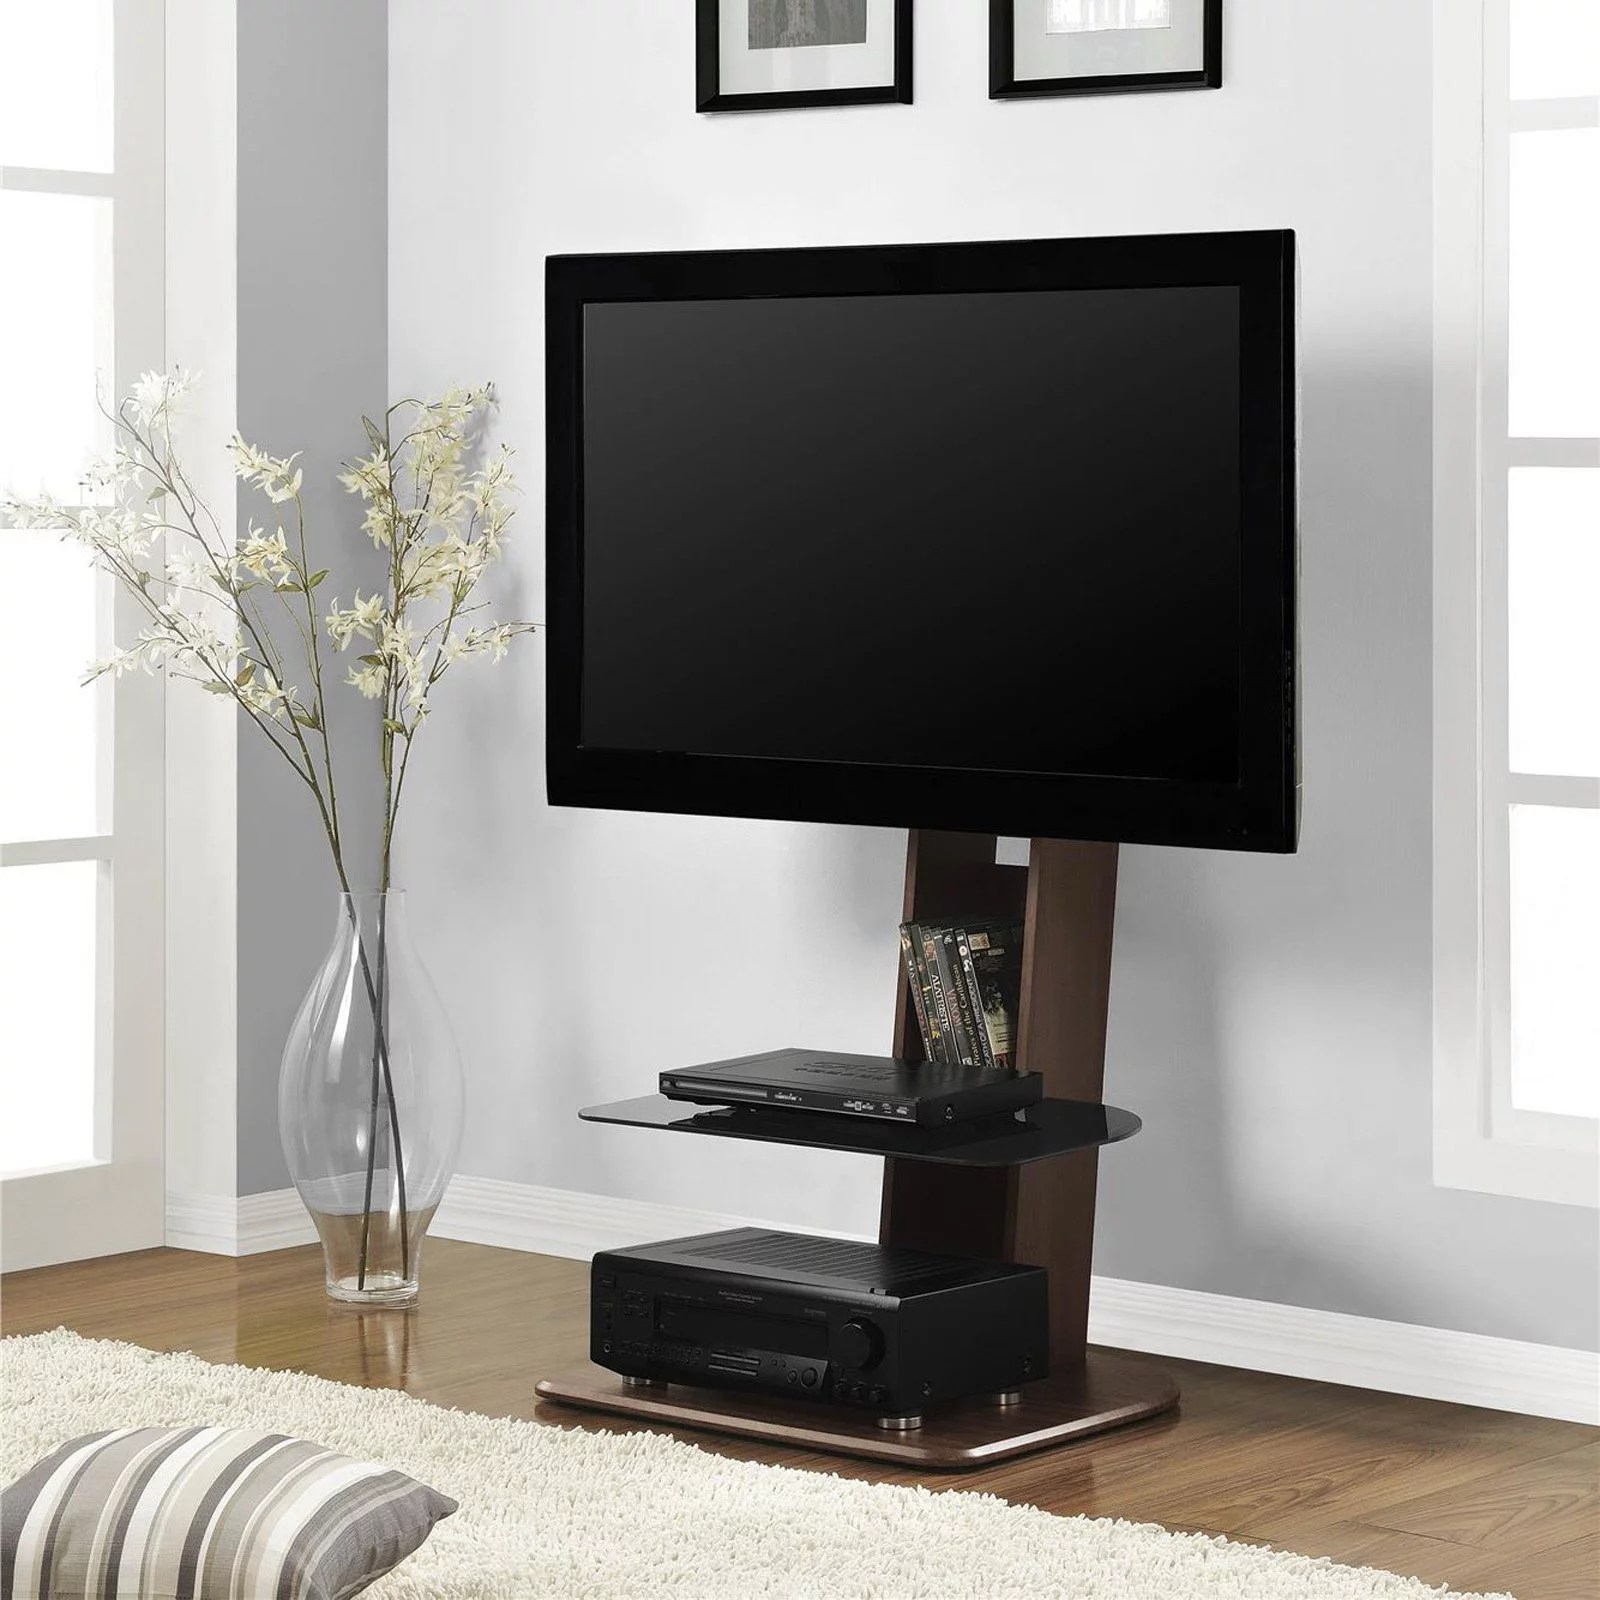 ameriwood home galaxy tv stand with mount for tvs up to 50 wide walnut